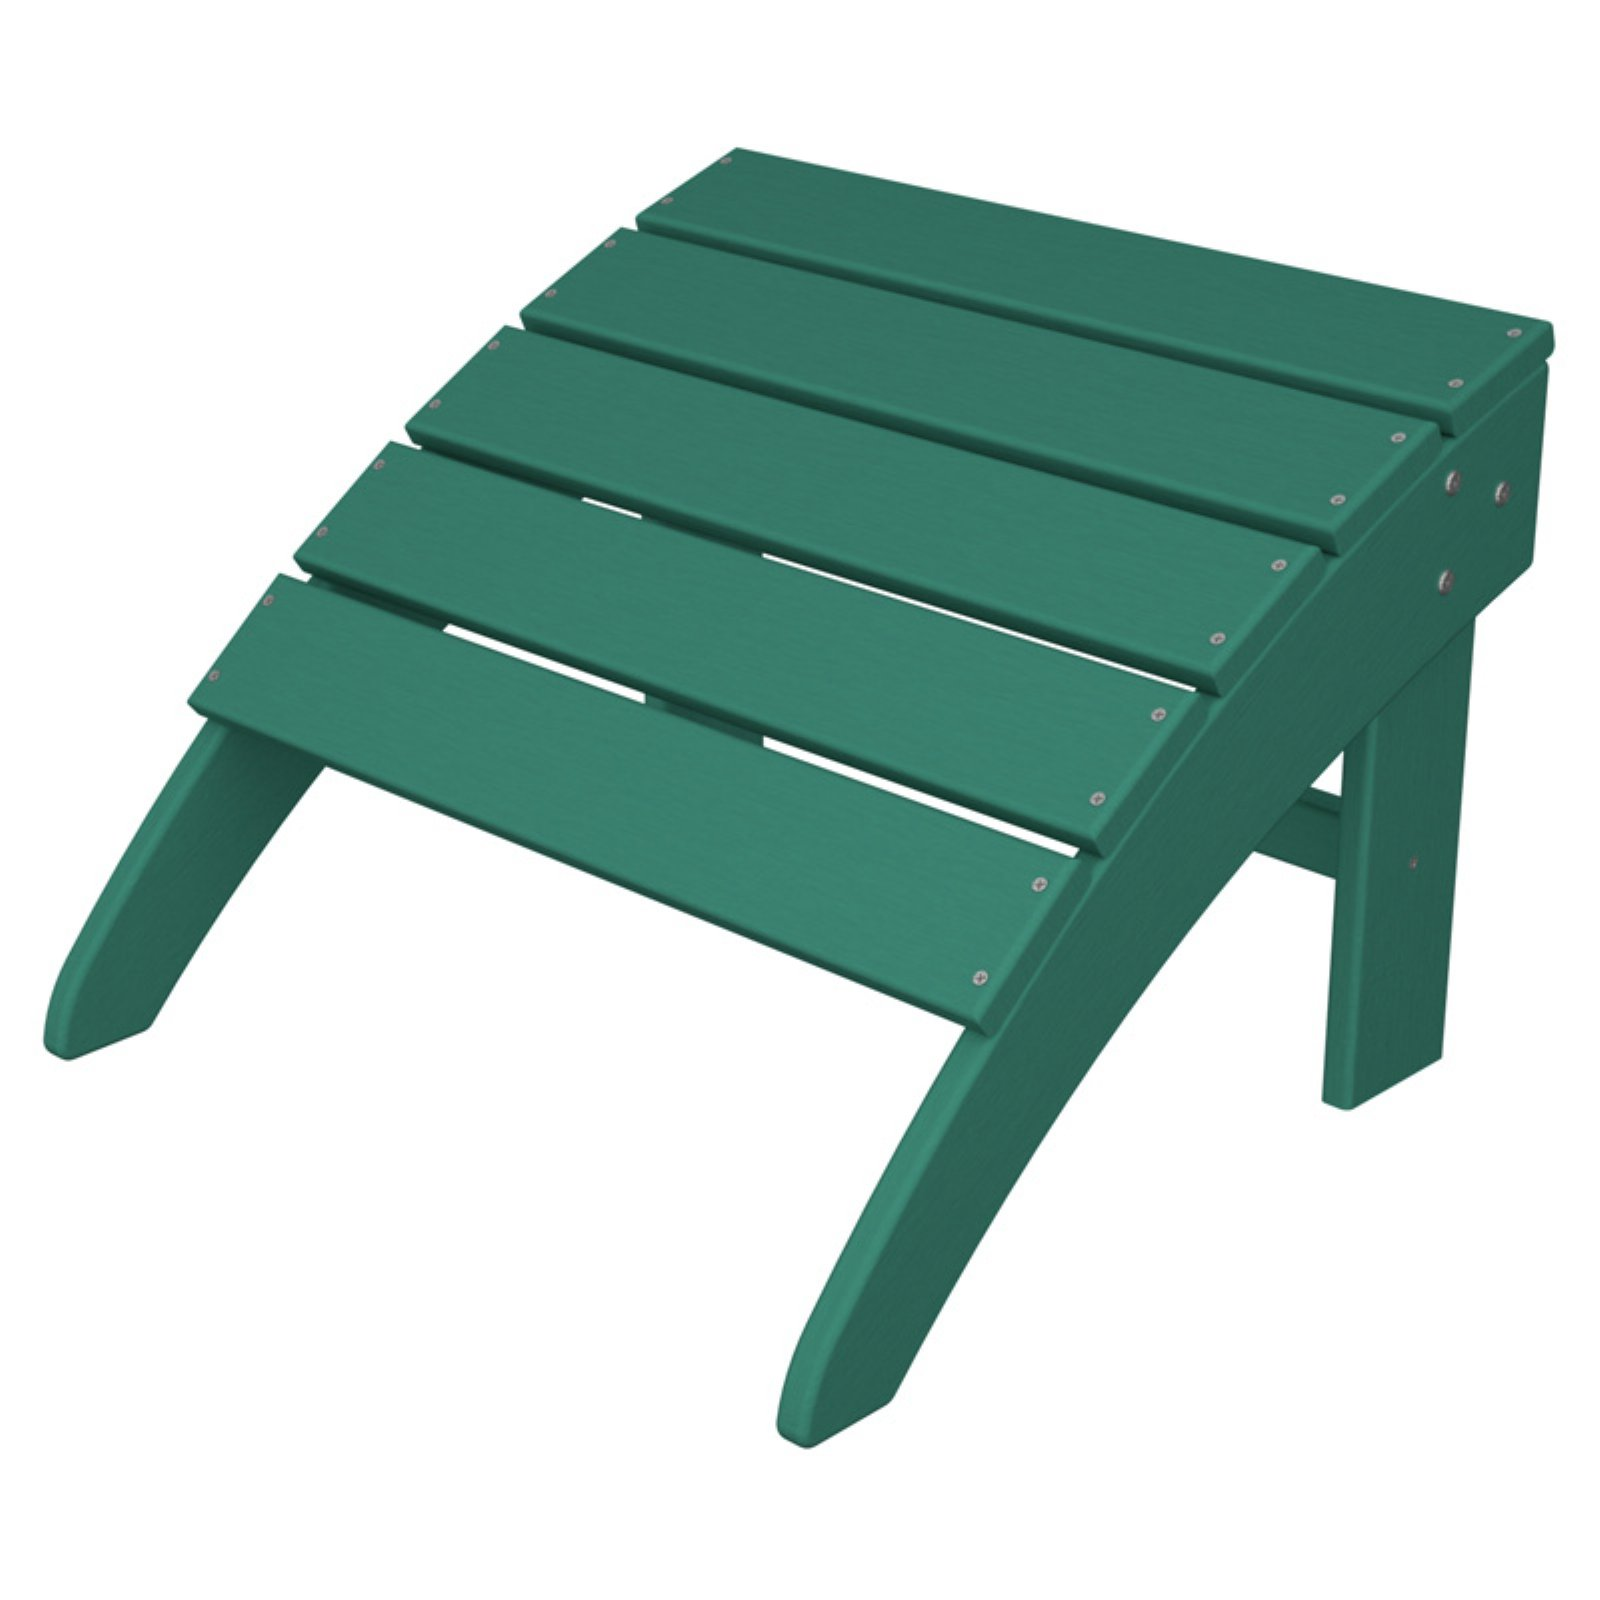 POLYWOOD® South Beach Recycled Plastic Adirondack Ottoman